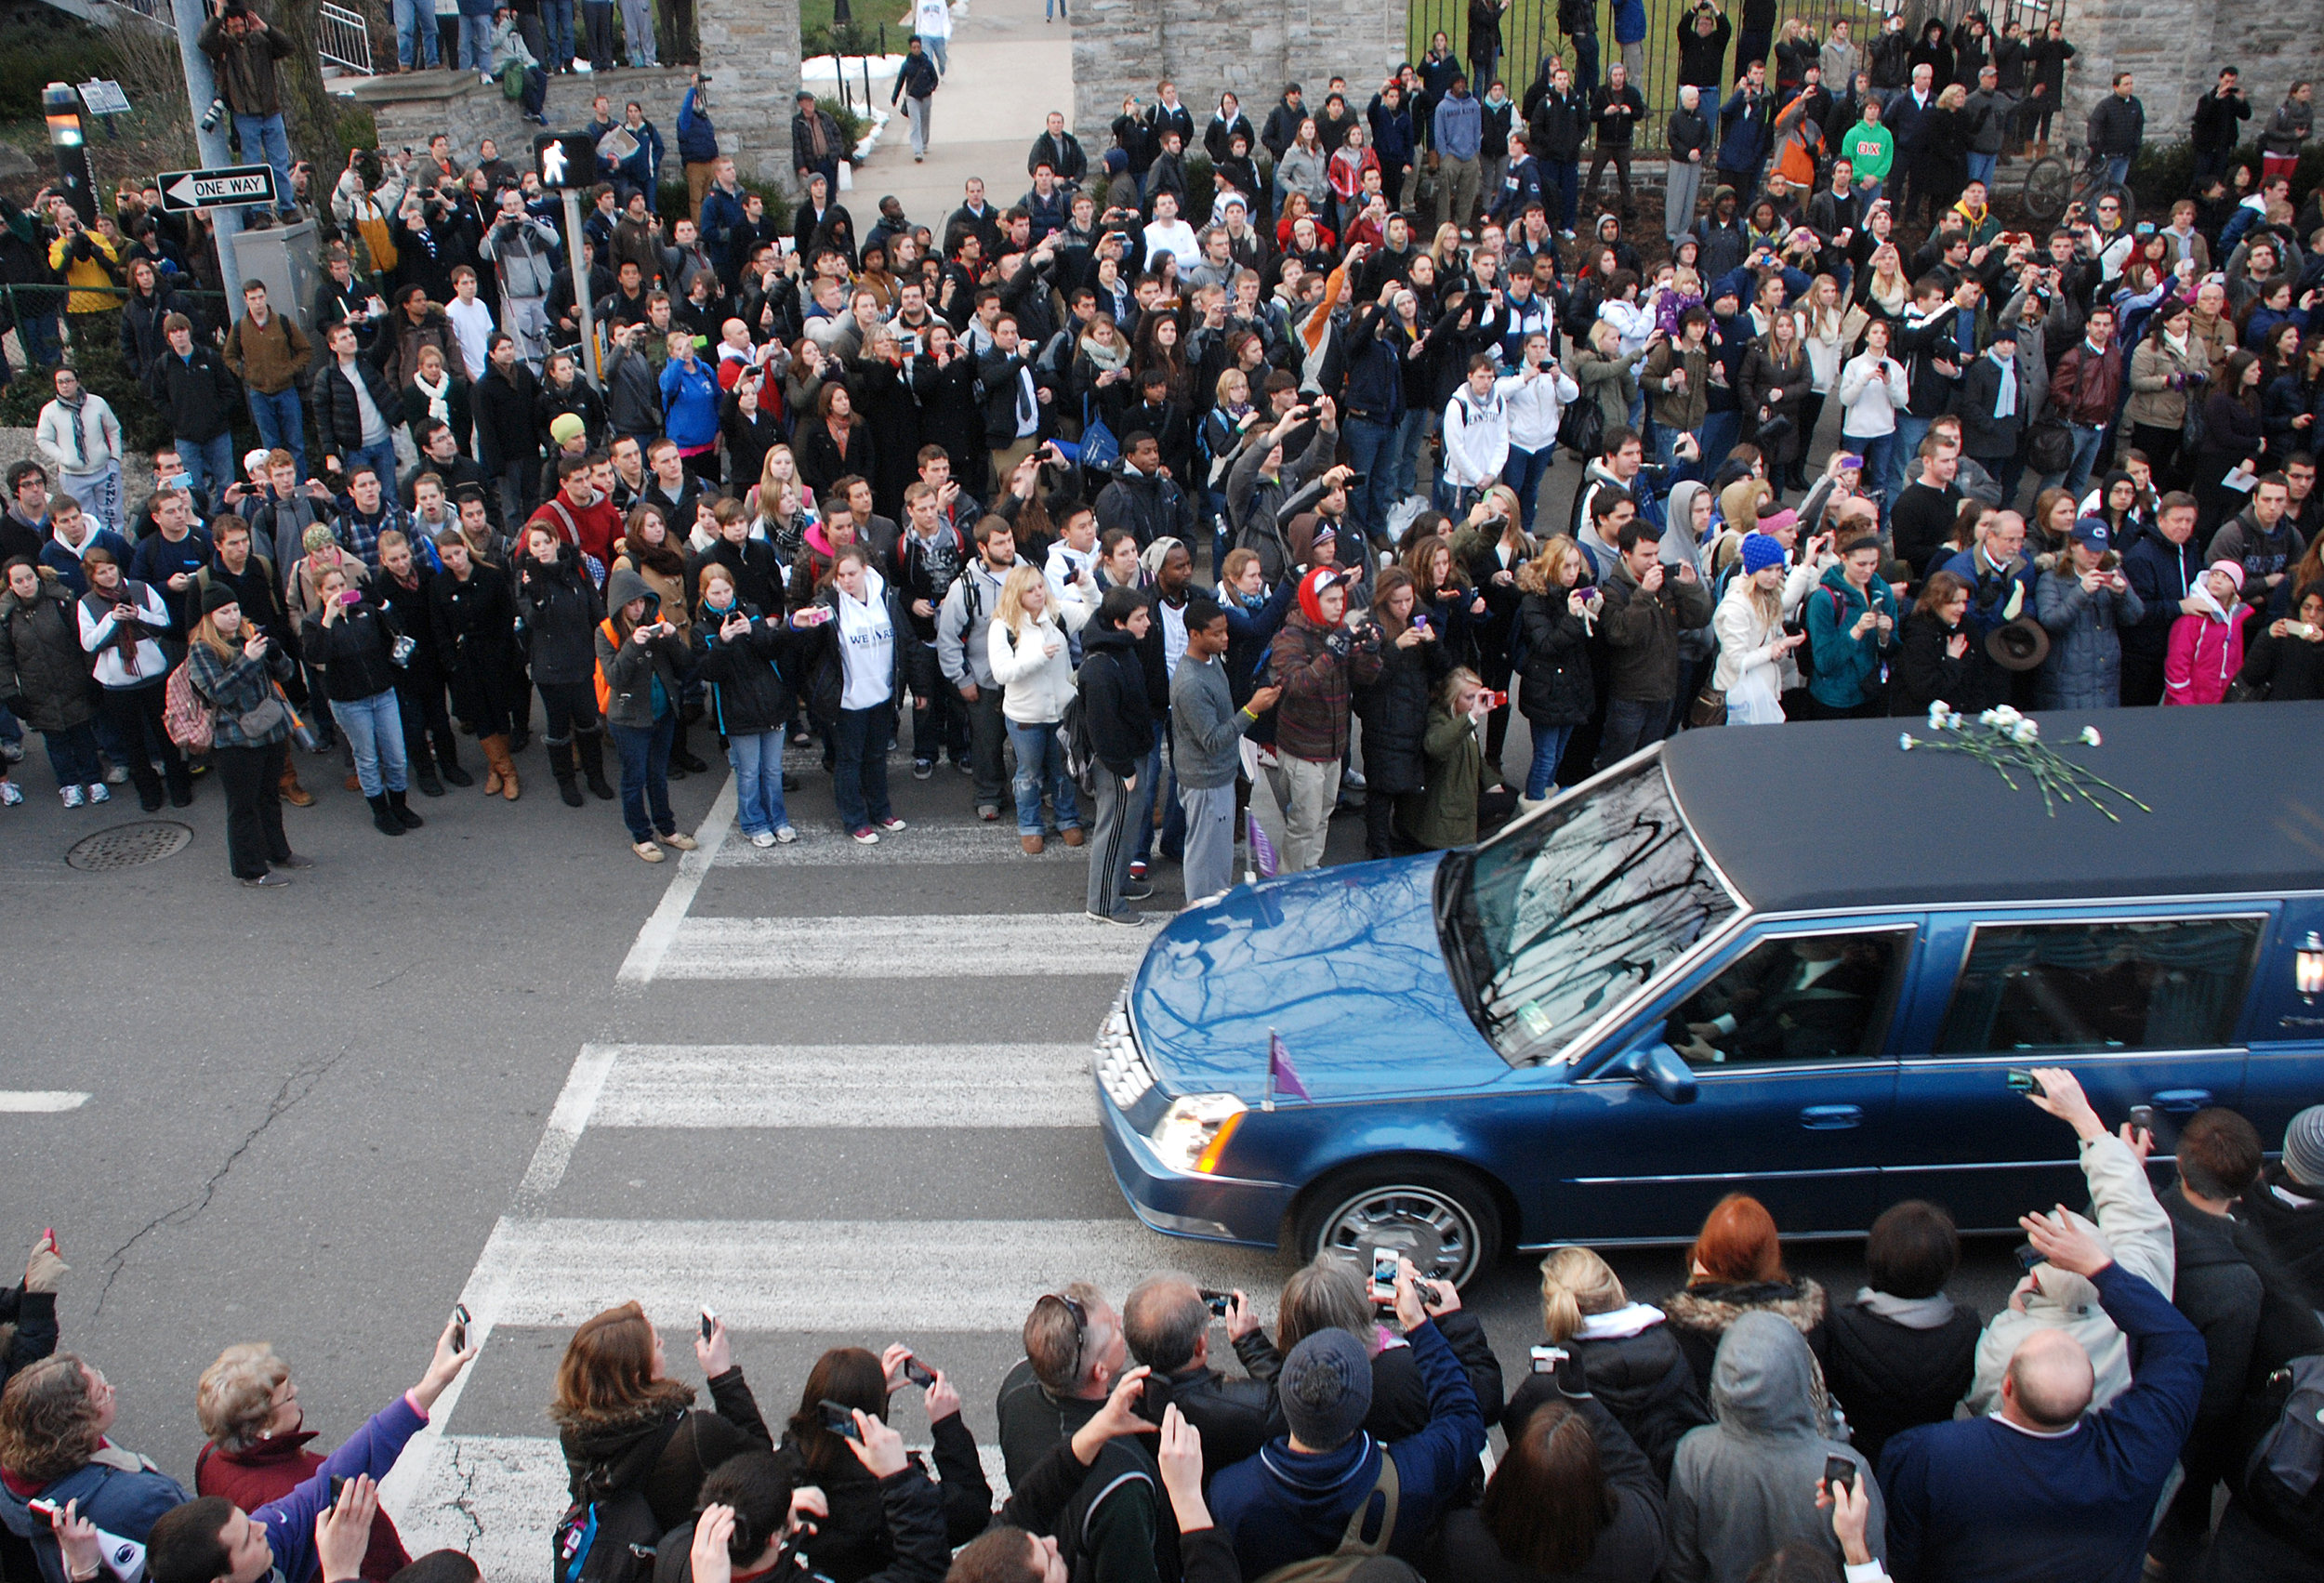 A hearse carrying the casket of Joe Paterno drives by the Allen Street gates on Wednesday, Jan. 25, 2011 during the funeral procession from the Pasquerilla Spiritual Center to a private burial.